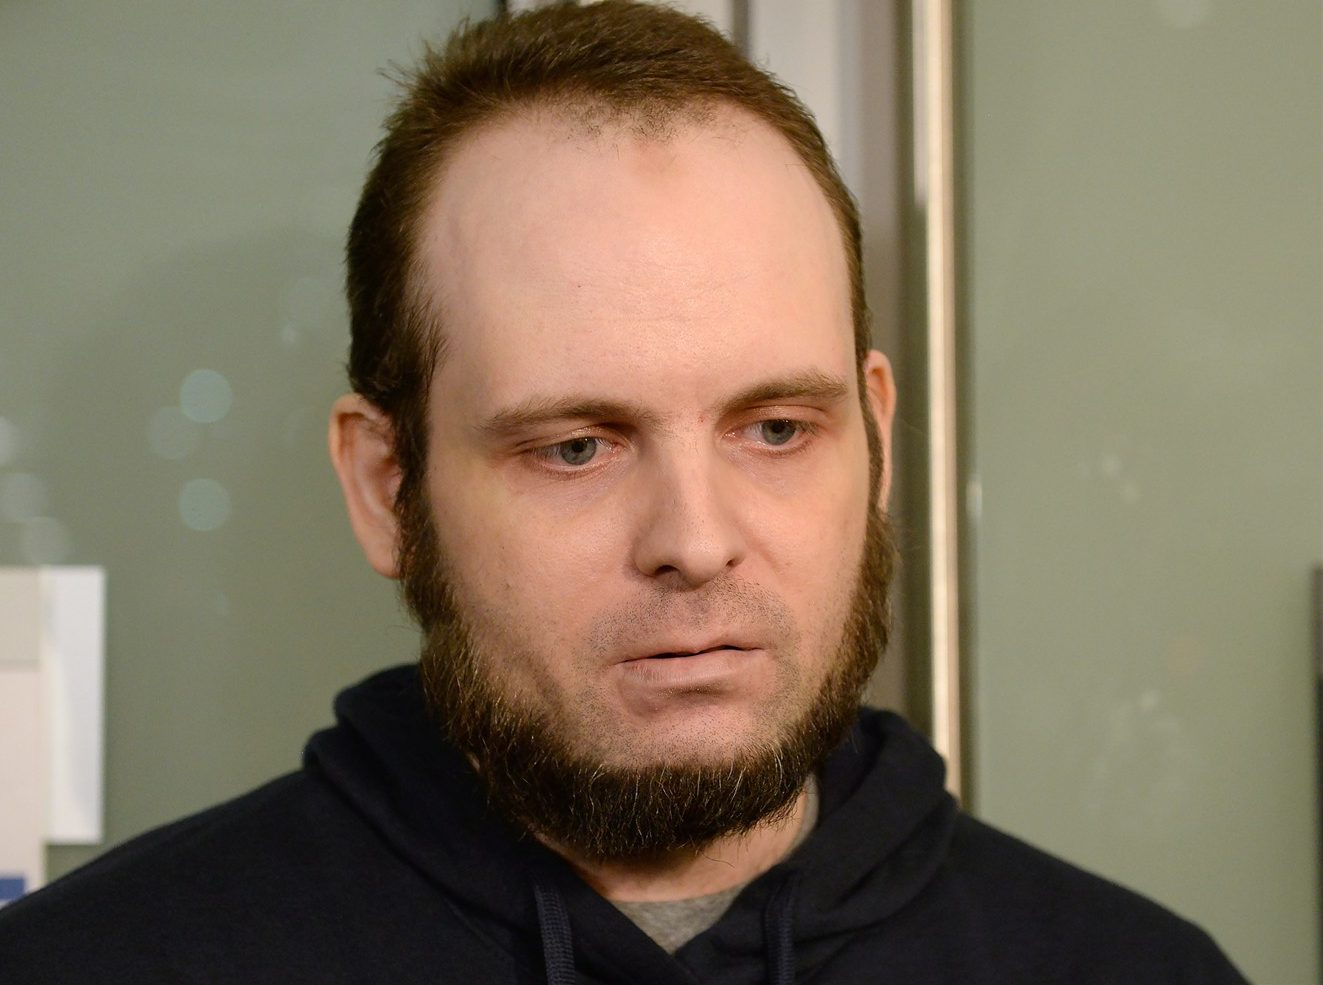 Joshua Boyle back in court, bail hearing put off